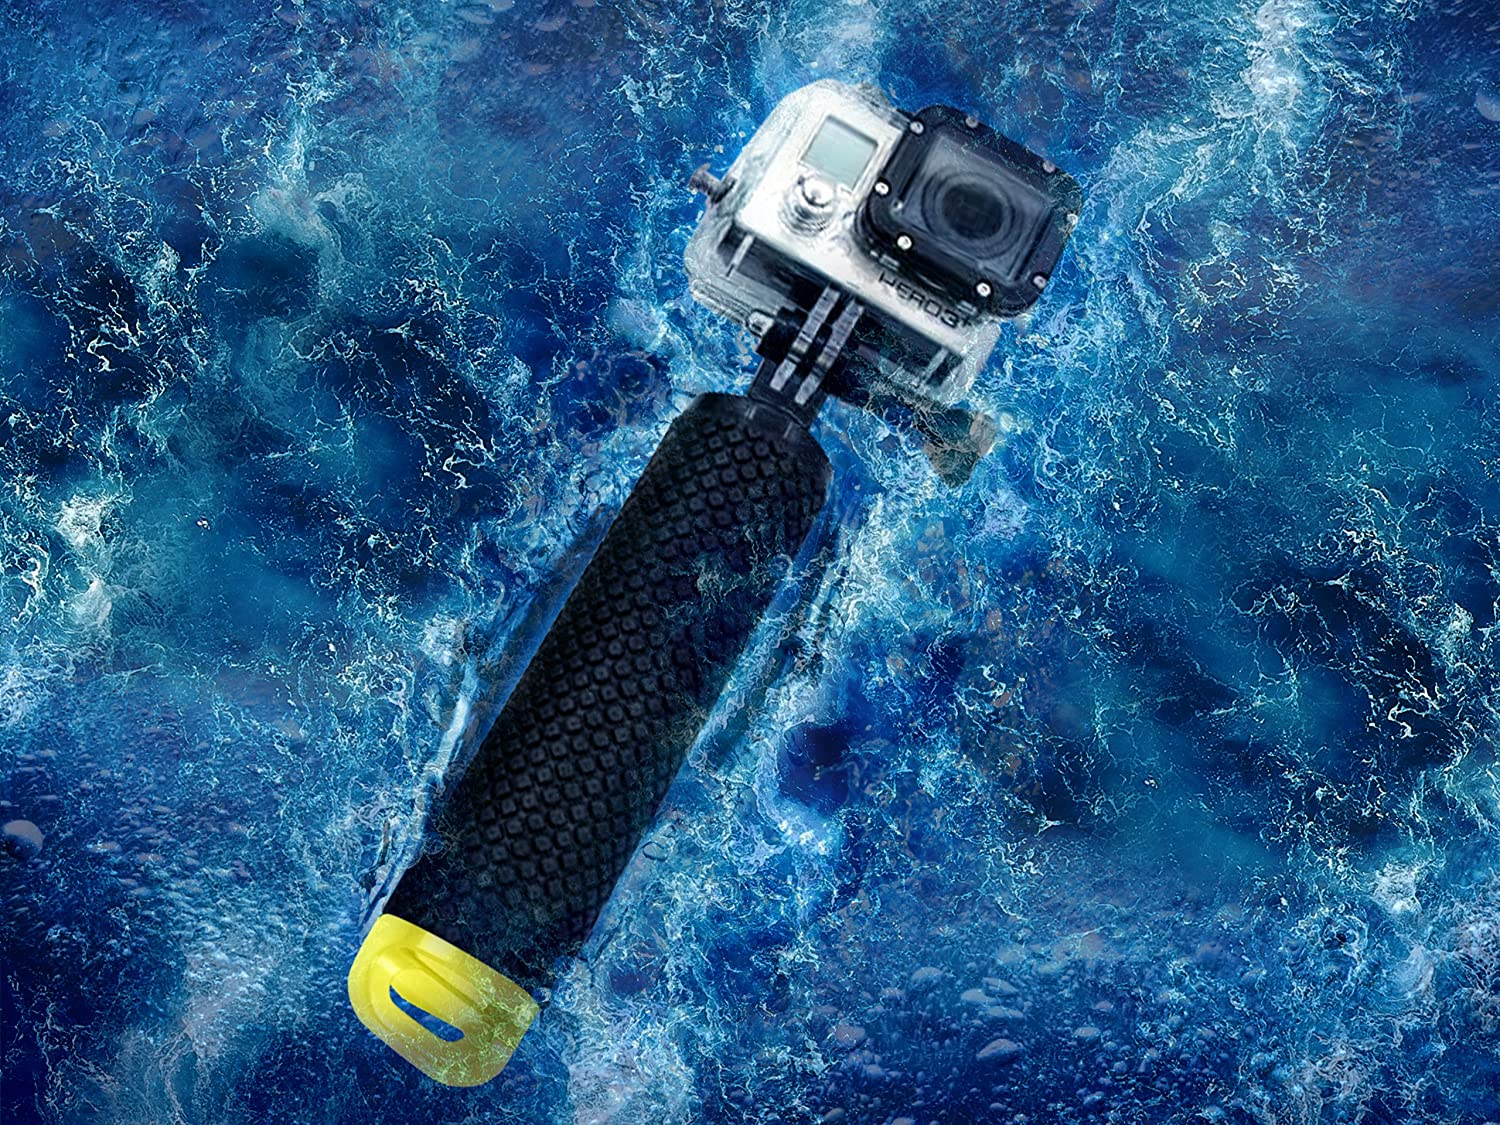 MiPremium Waterproof Floating Hand Grip Compatible with GoPro Camera Hero 5 Session Black Silver Hero 6 5 4 3 2 1 Handler /& Handle Mount Accessories Kit /& Water Sport Floaty for Action Cameras Blue